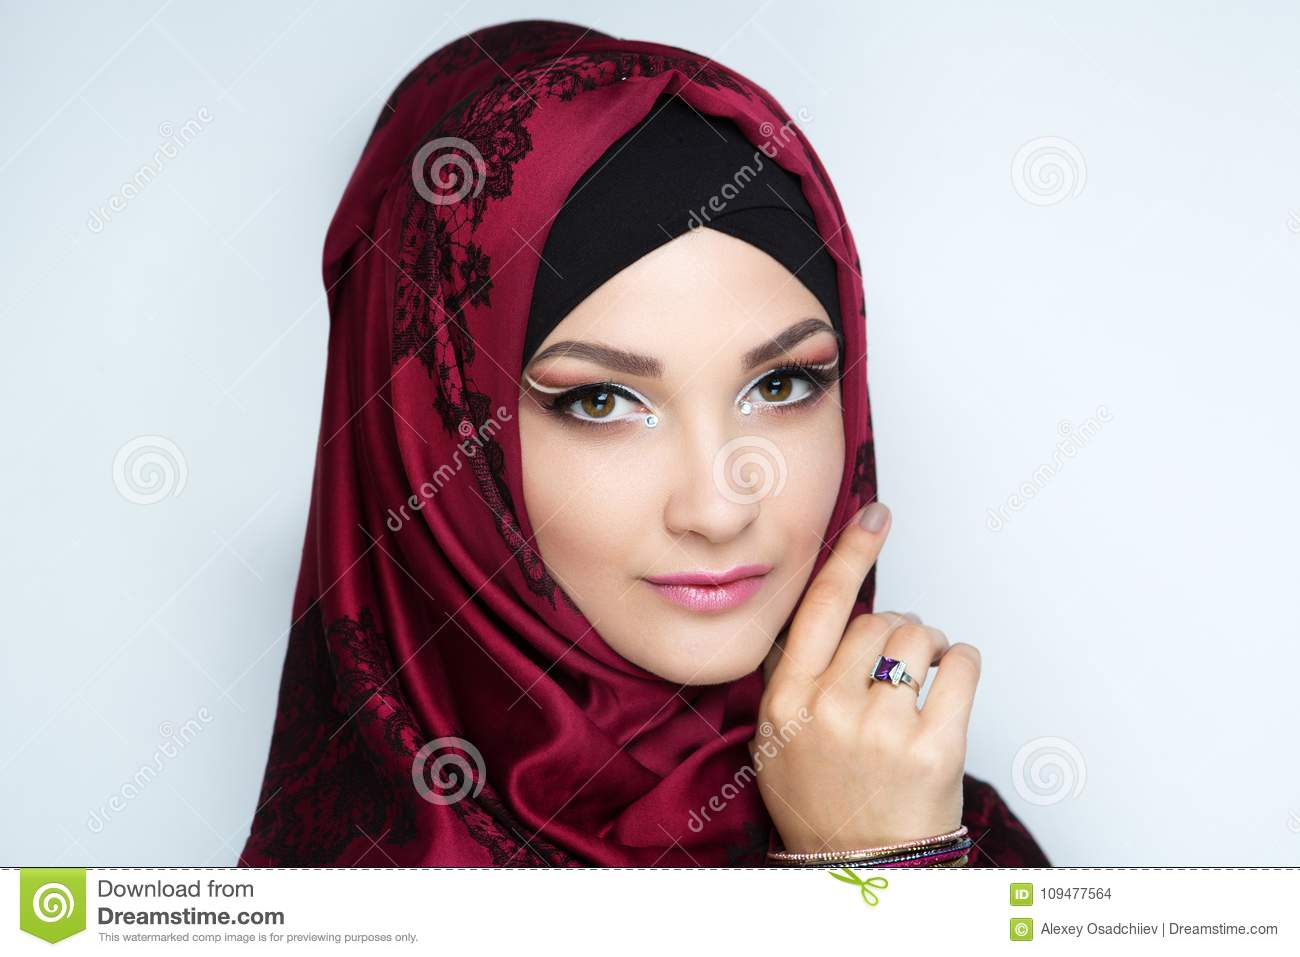 7270c569f2651 Young beautiful woman lady girl in a headscarf hijab. Professional  cosmetics bright makeup. Shiny lipstick lip-gloss, red shadows.